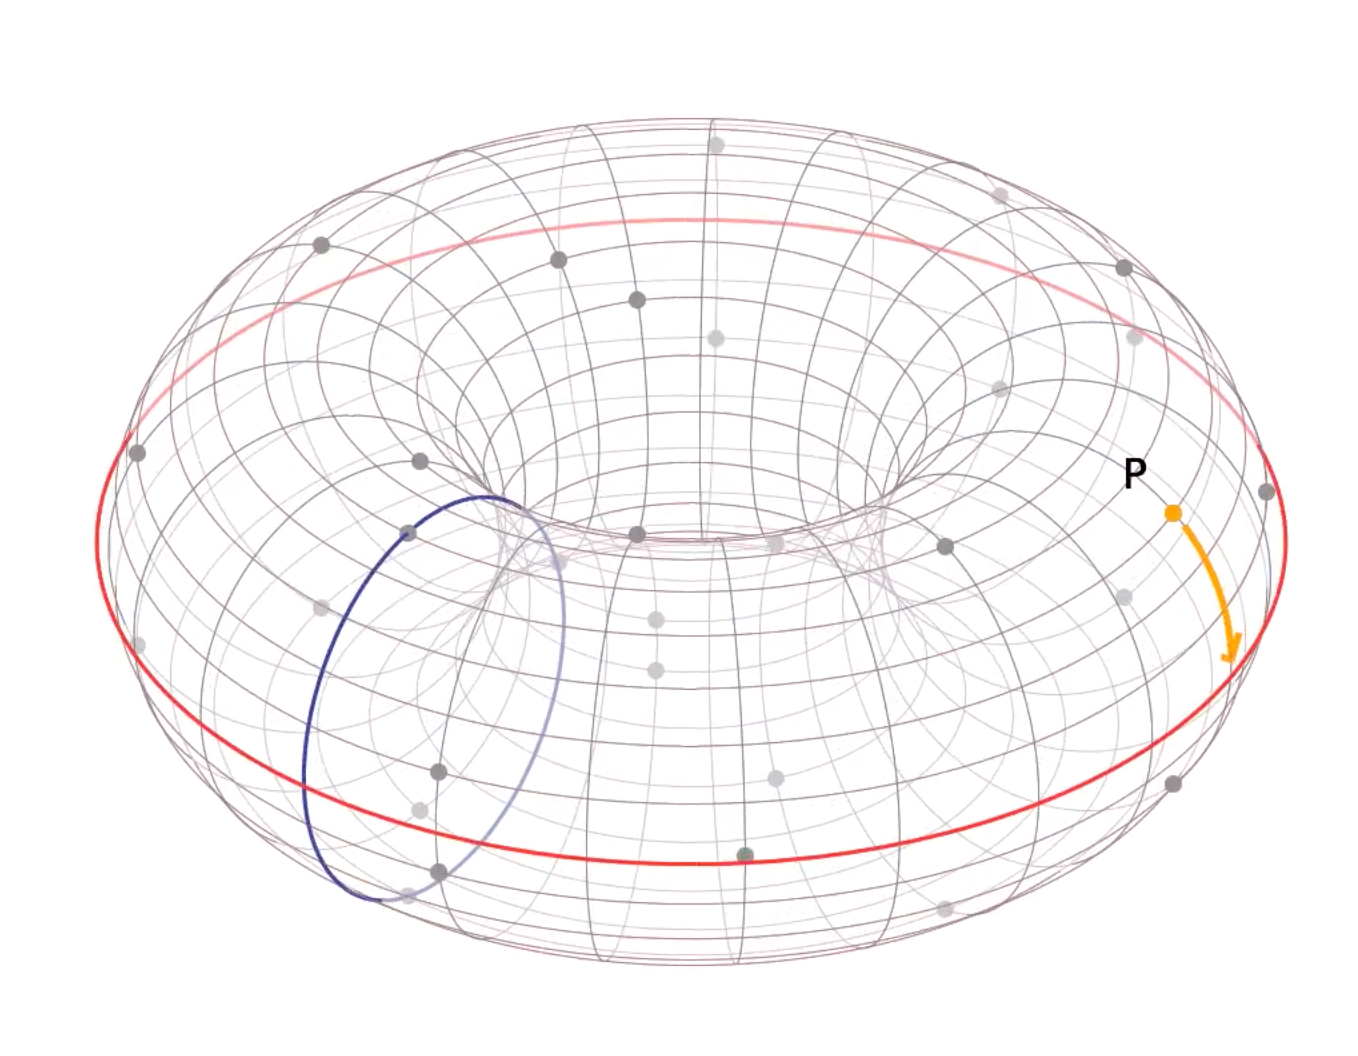 Elliptic Curve on finite field in 3D space a donut shape, from Trustica